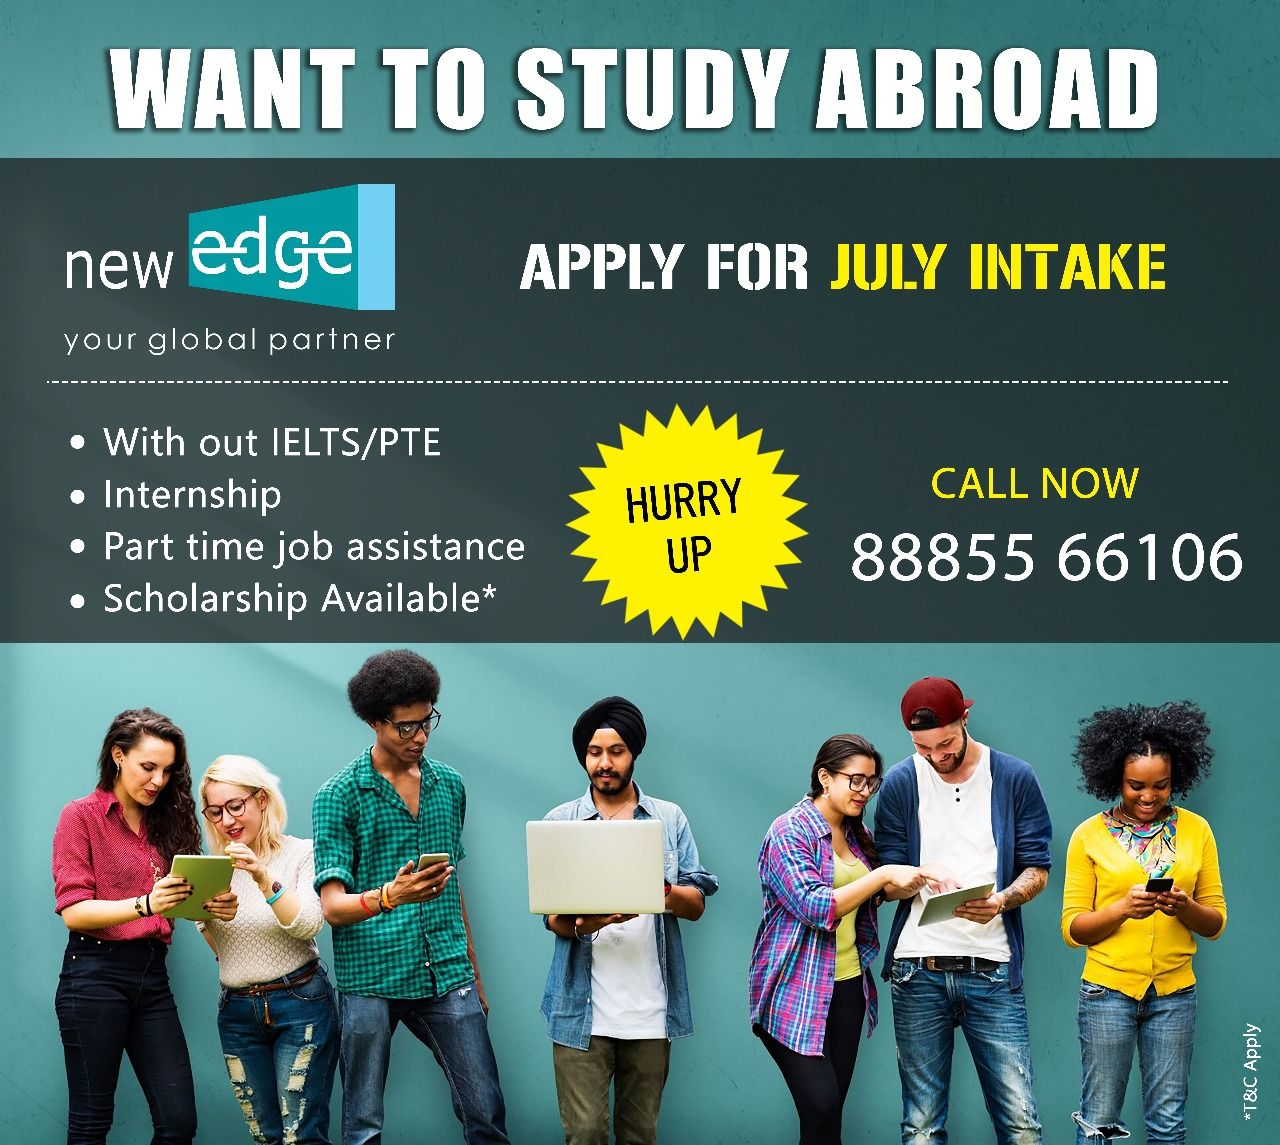 Overseas Education with New Edge. one of the best overseas